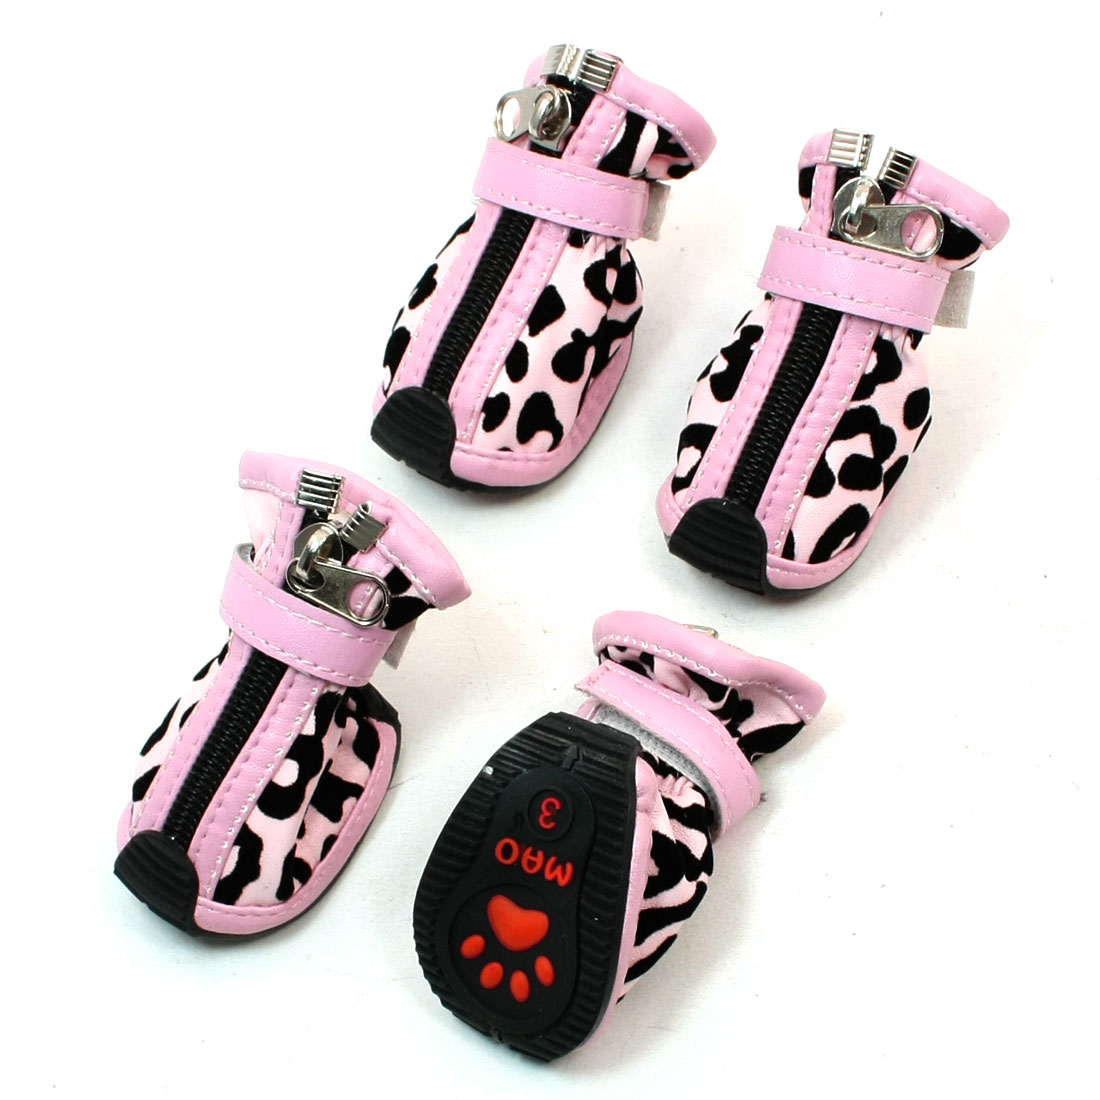 2 Pairs Pink Black Leopard Printed Zippered Faux Leather Dog Shoes Boots Size 3